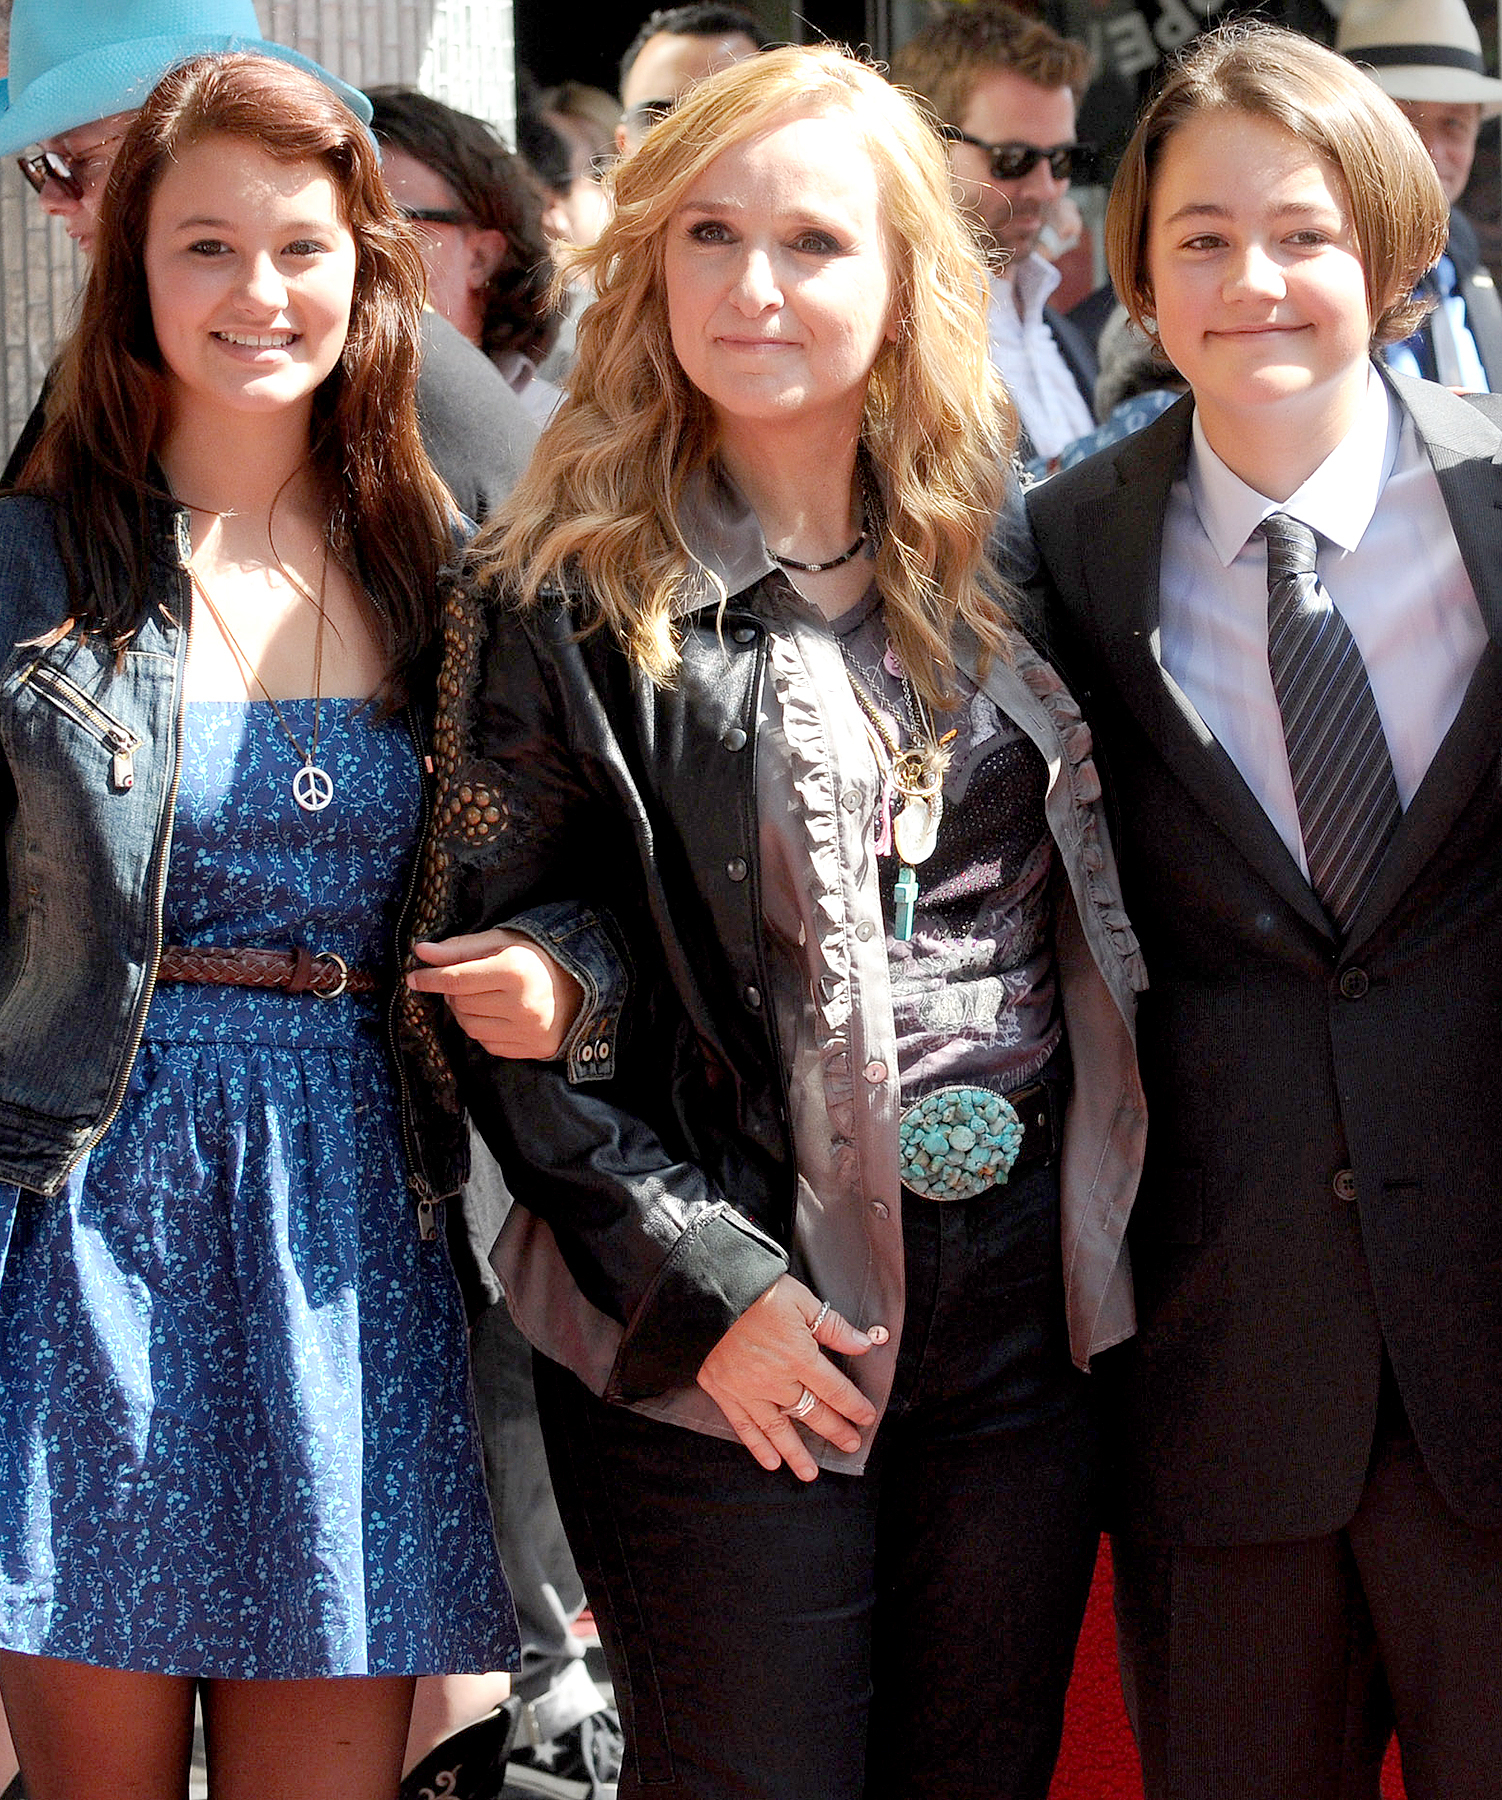 Melissa Etheridge, Bailey Jean Cypher and Beckett Cypher attend Etheridge's Hollywood Walk of Fame Induction Ceremony in Hollywood on September 27, 2011.